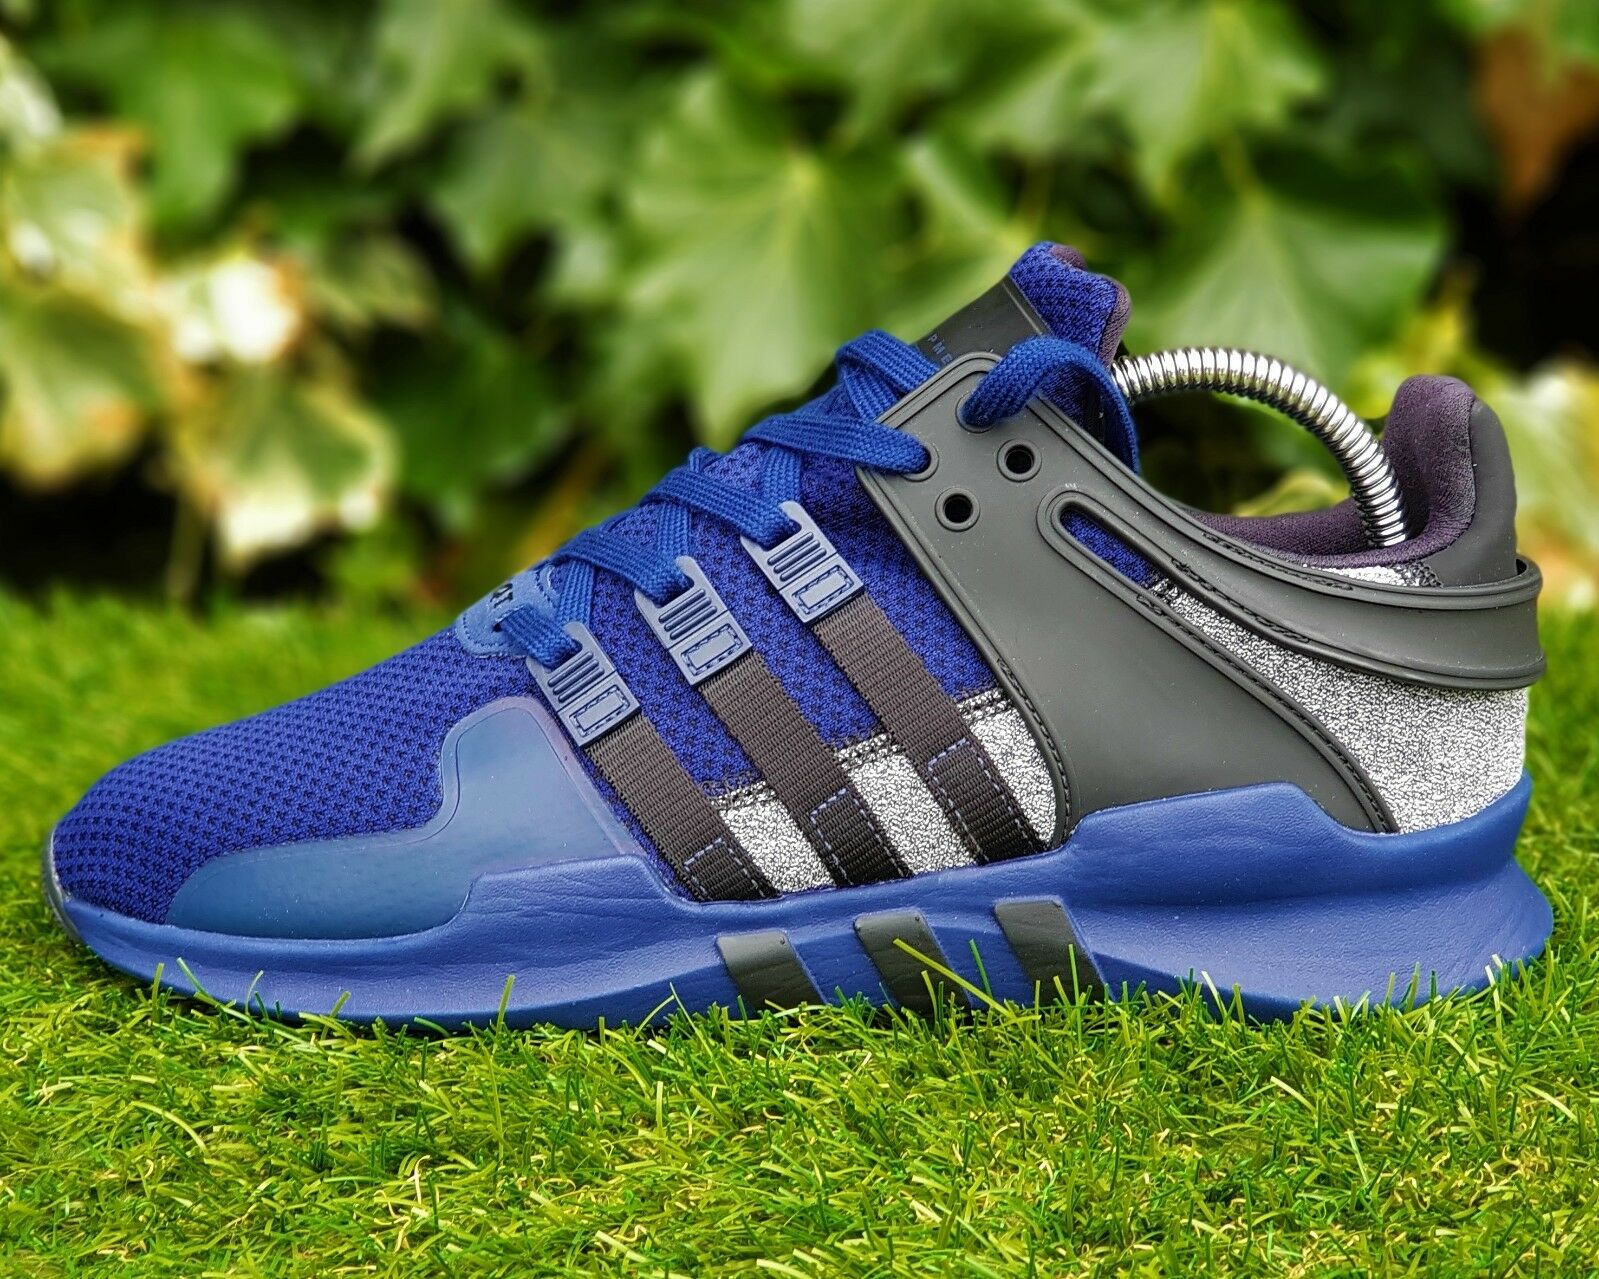 BNWB Adidas Originals ® Equipment Eqt Support Adv 91 17 bluee Trainers UK Size 11